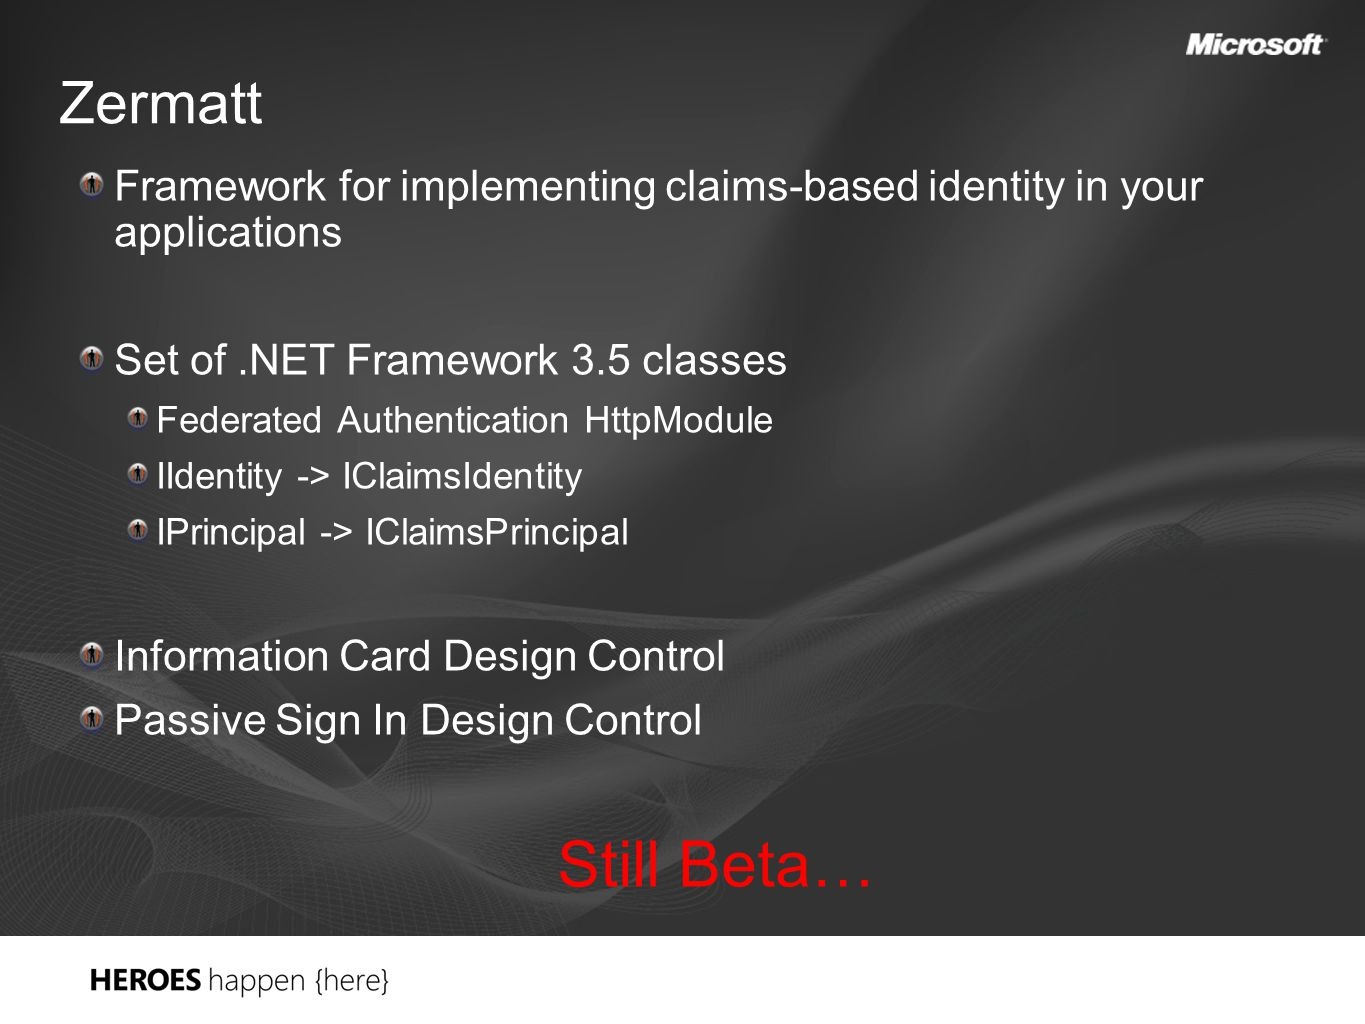 Zermatt Framework for implementing claims-based identity in your applications Set of.NET Framework 3.5 classes Federated Authentication HttpModule IId